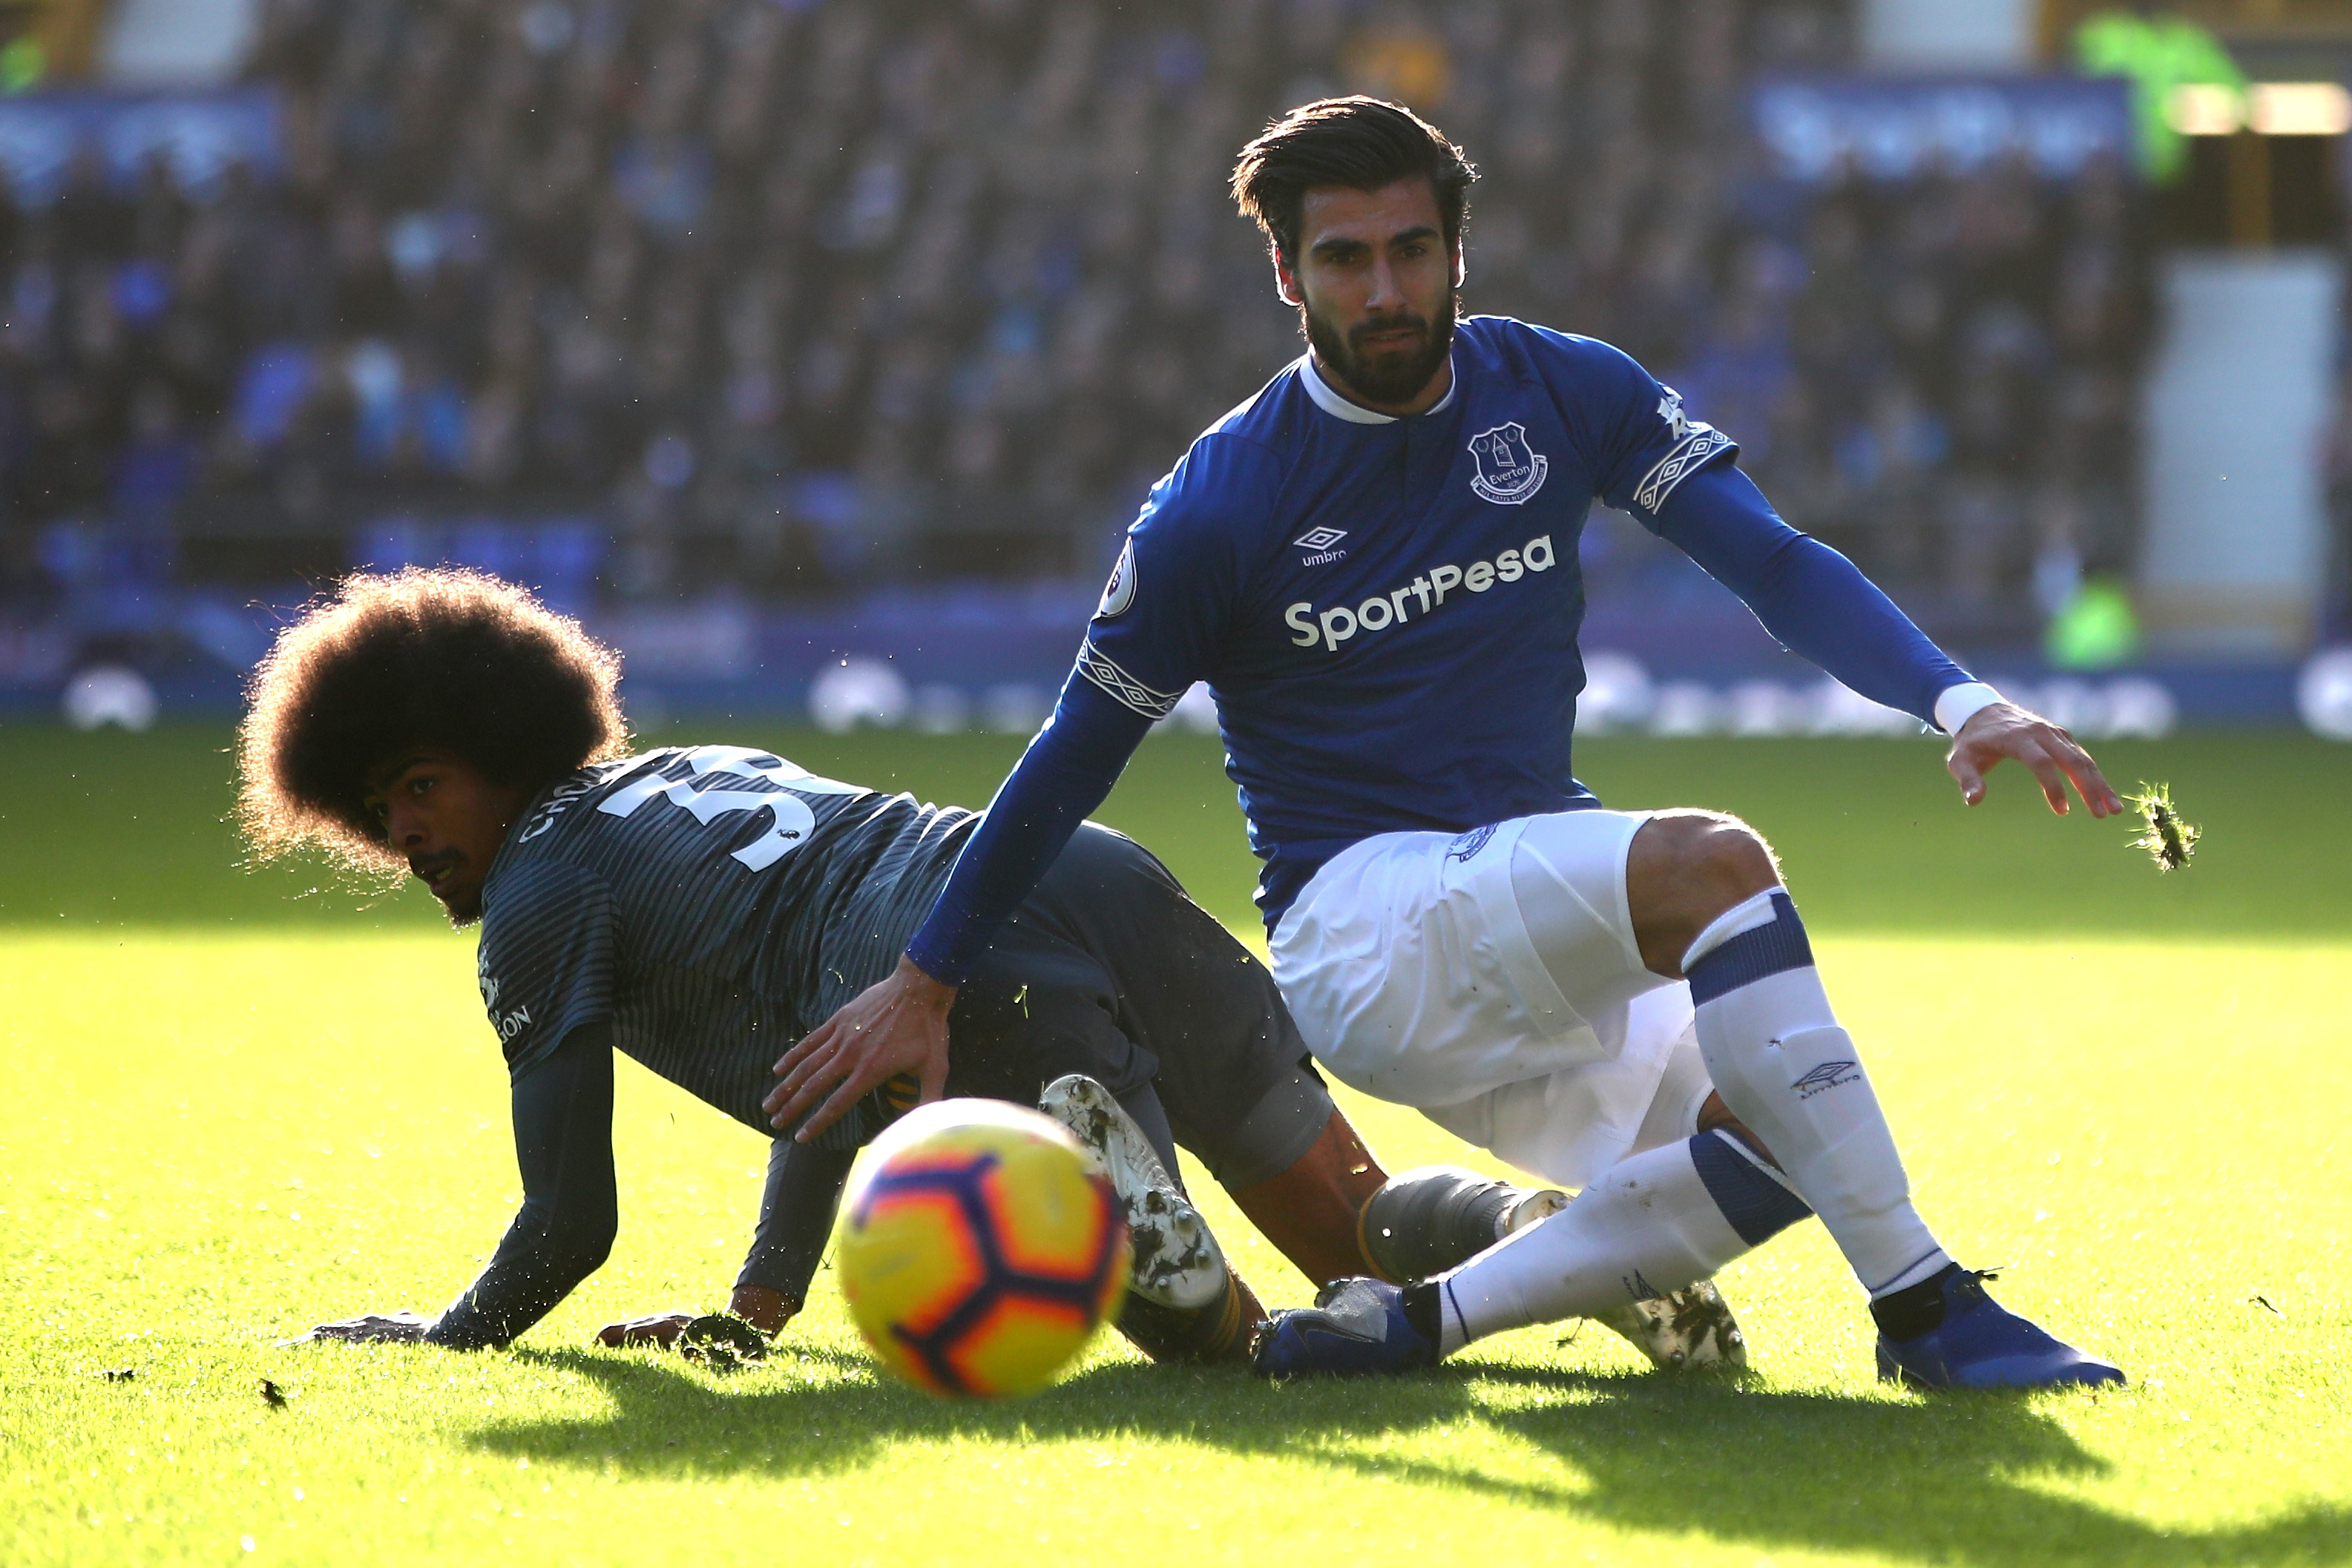 Will Gomes sign for Everton on a permanent basis? (Photo courtesy: AFP/Getty)